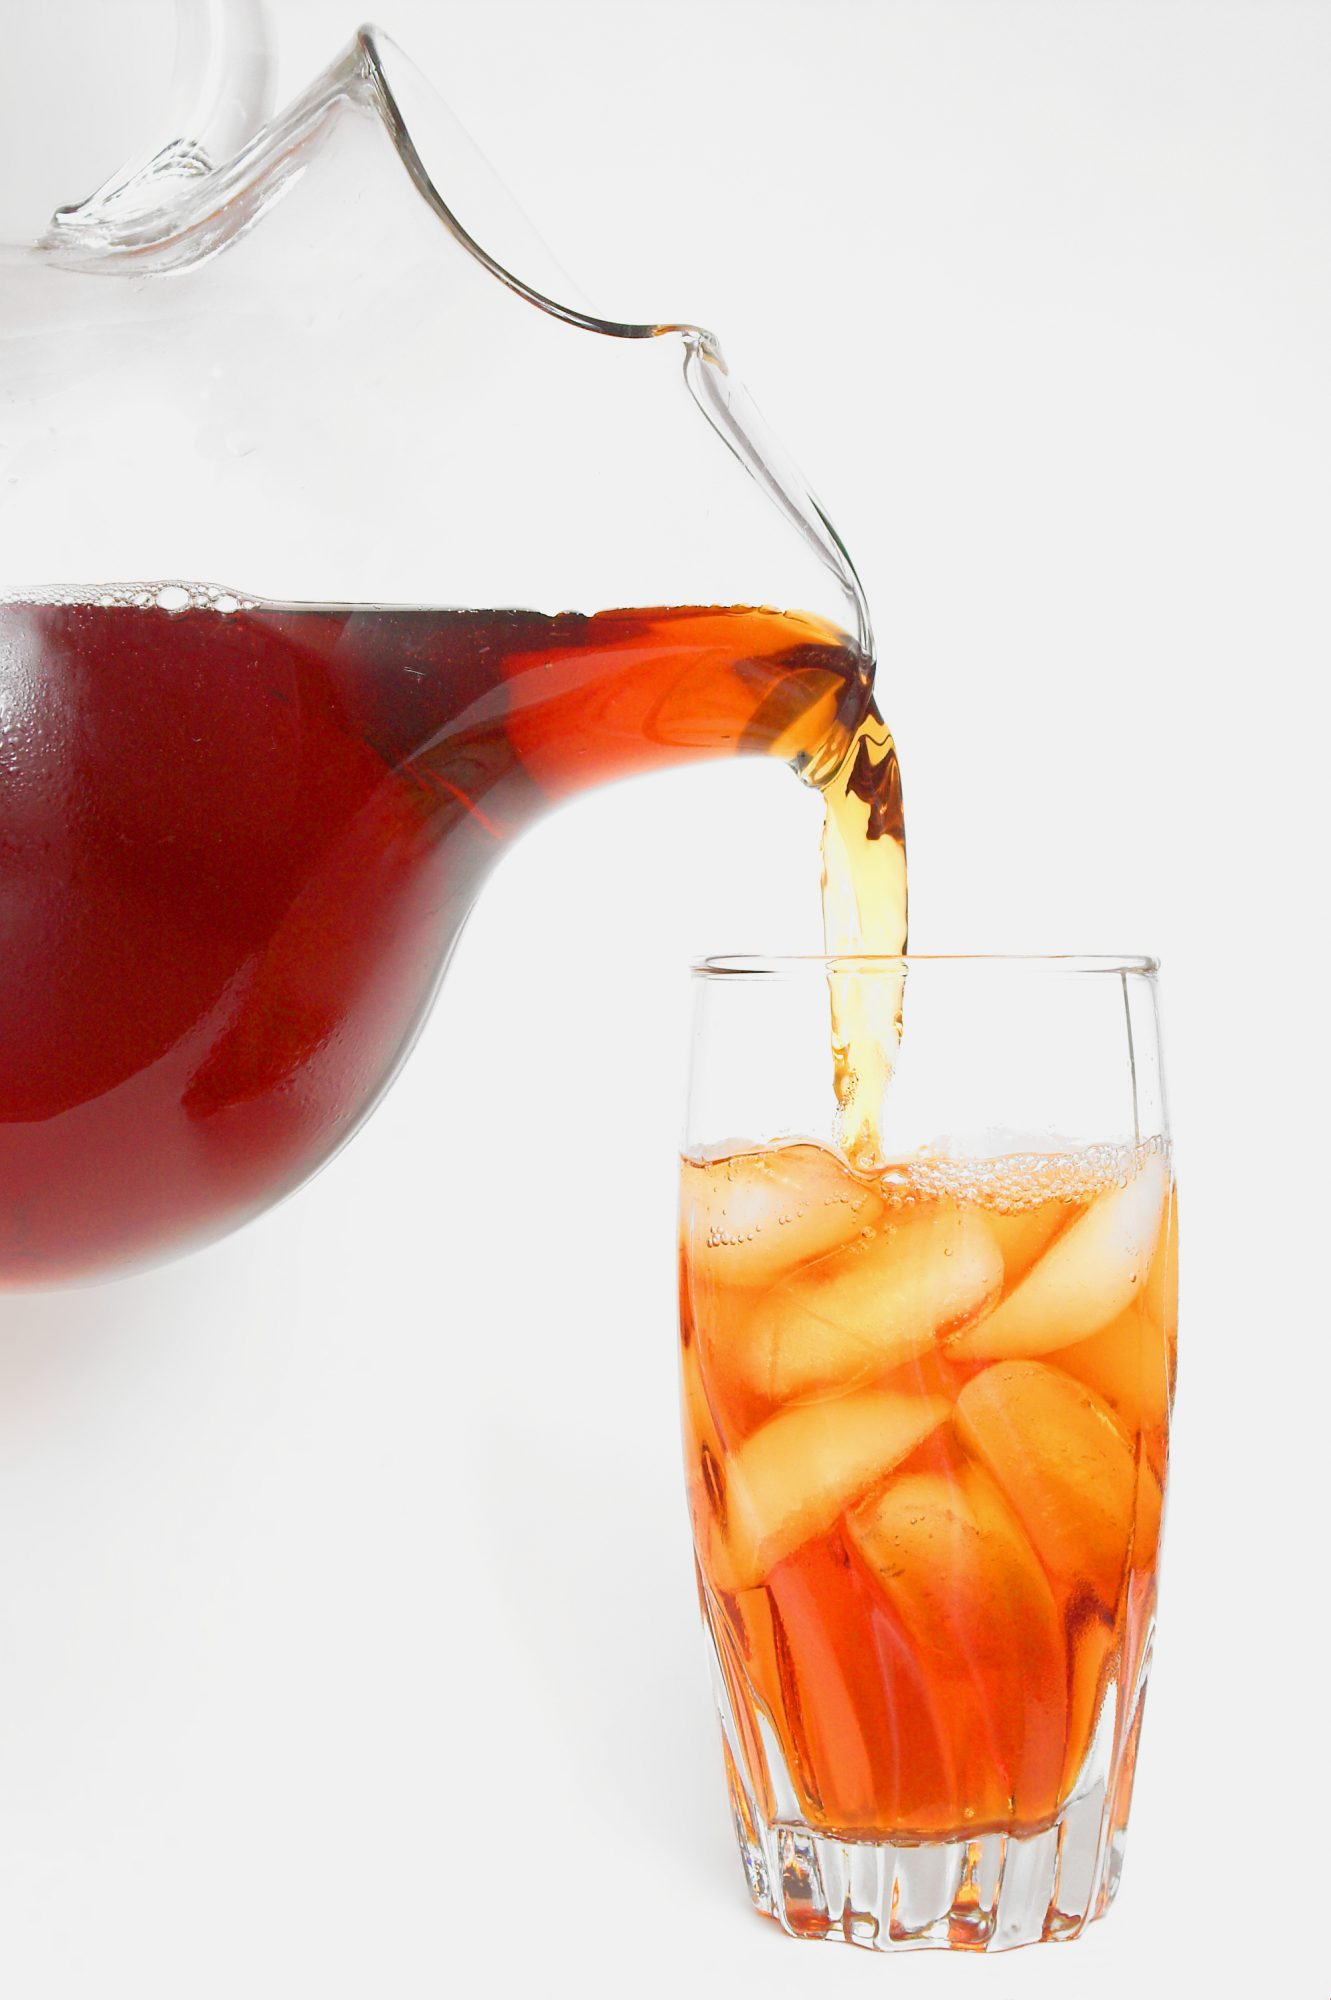 Myth #2: Sweet tea is just iced tea with a lot of sugar.